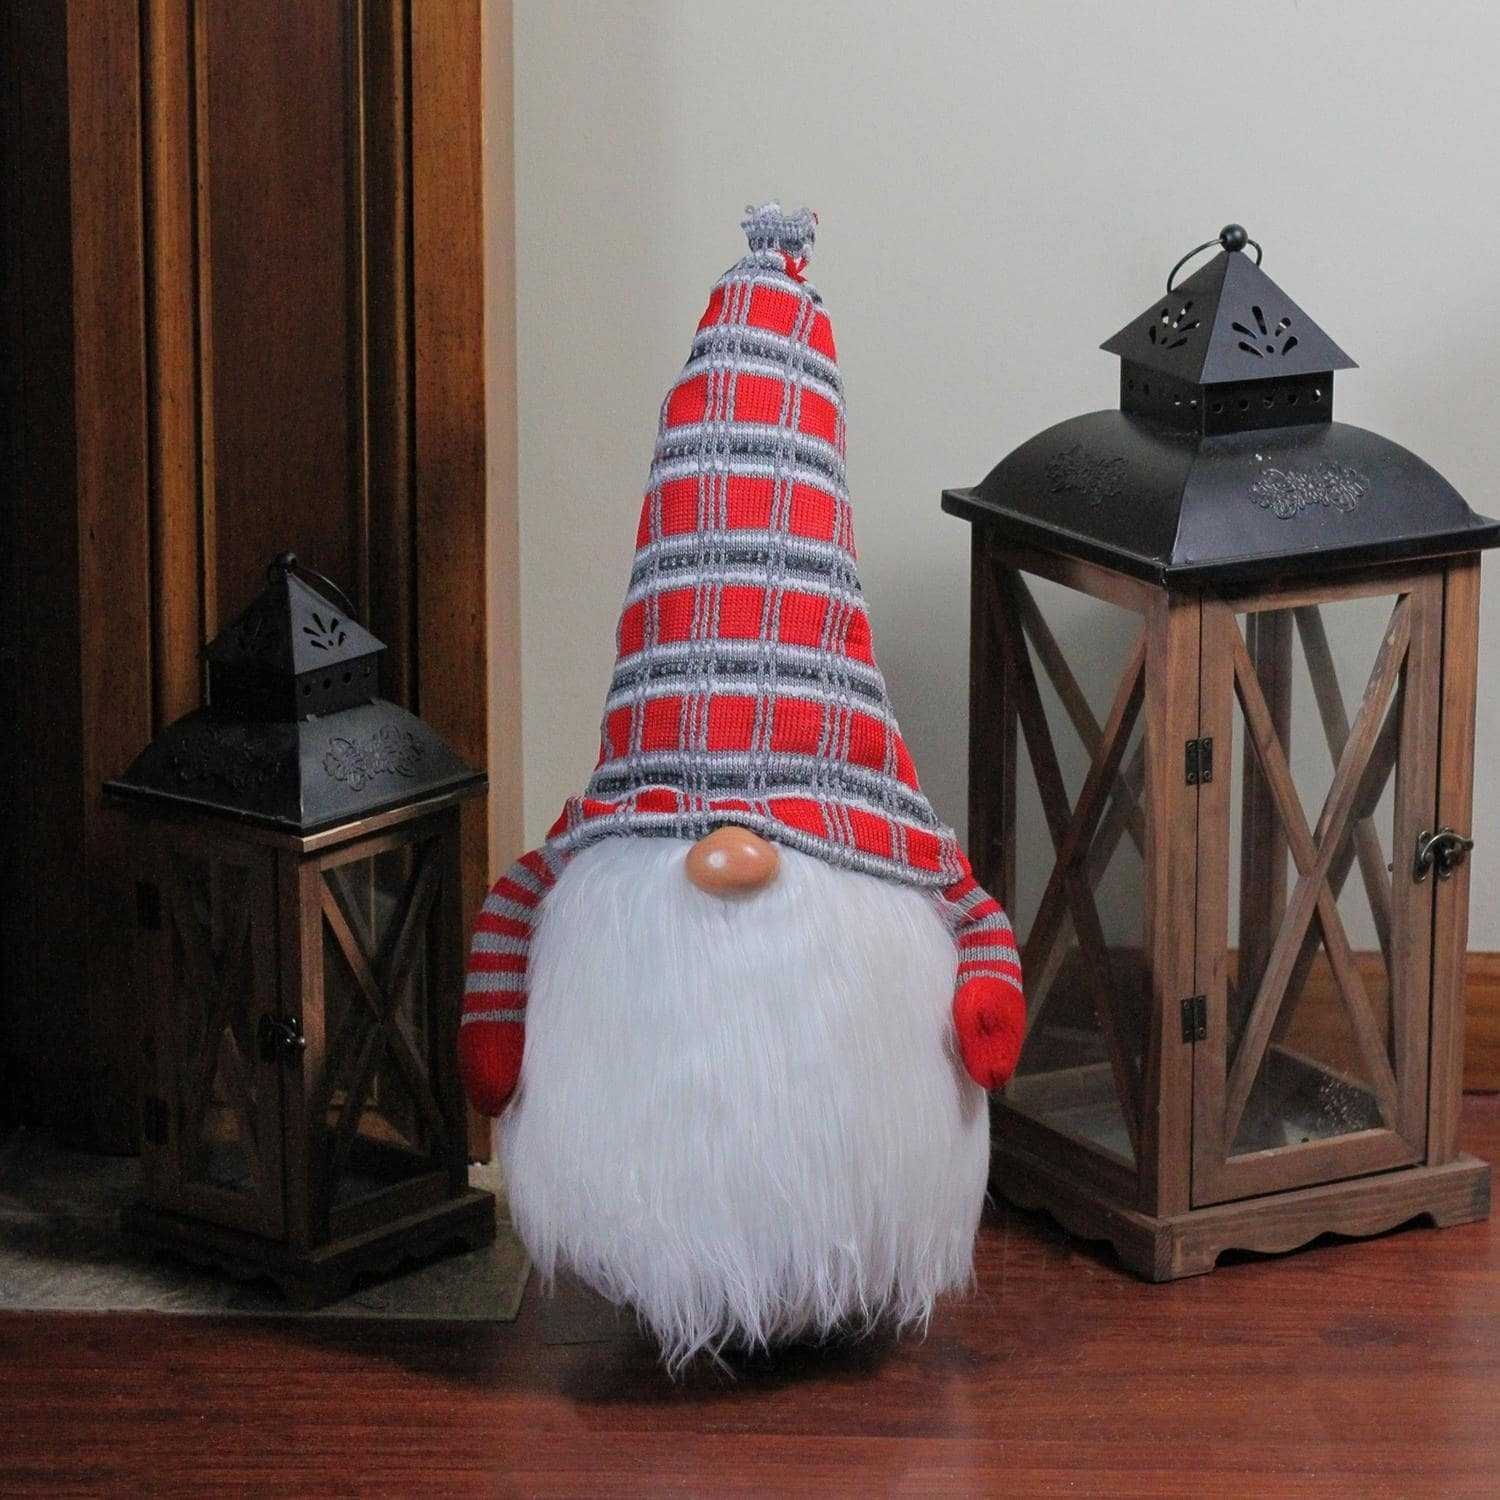 24 Traditional Christmas Tumbling Santa Gnome With White Beard And Red Plaid Hat Overstock 22987018